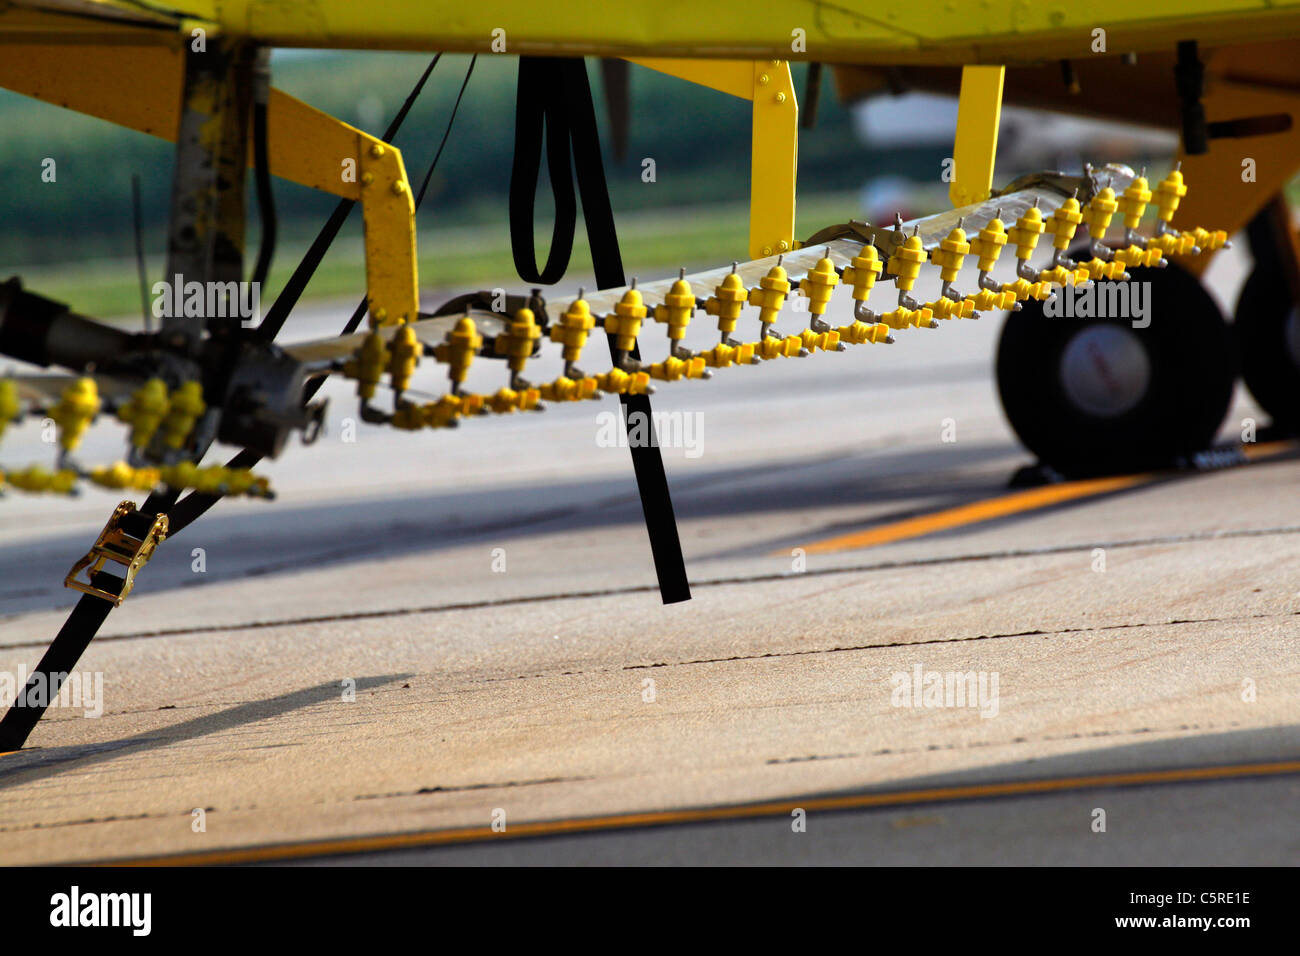 Spray nozzles under the wings of an airplane used in aerial application of agricultural chemicals Stock Photo